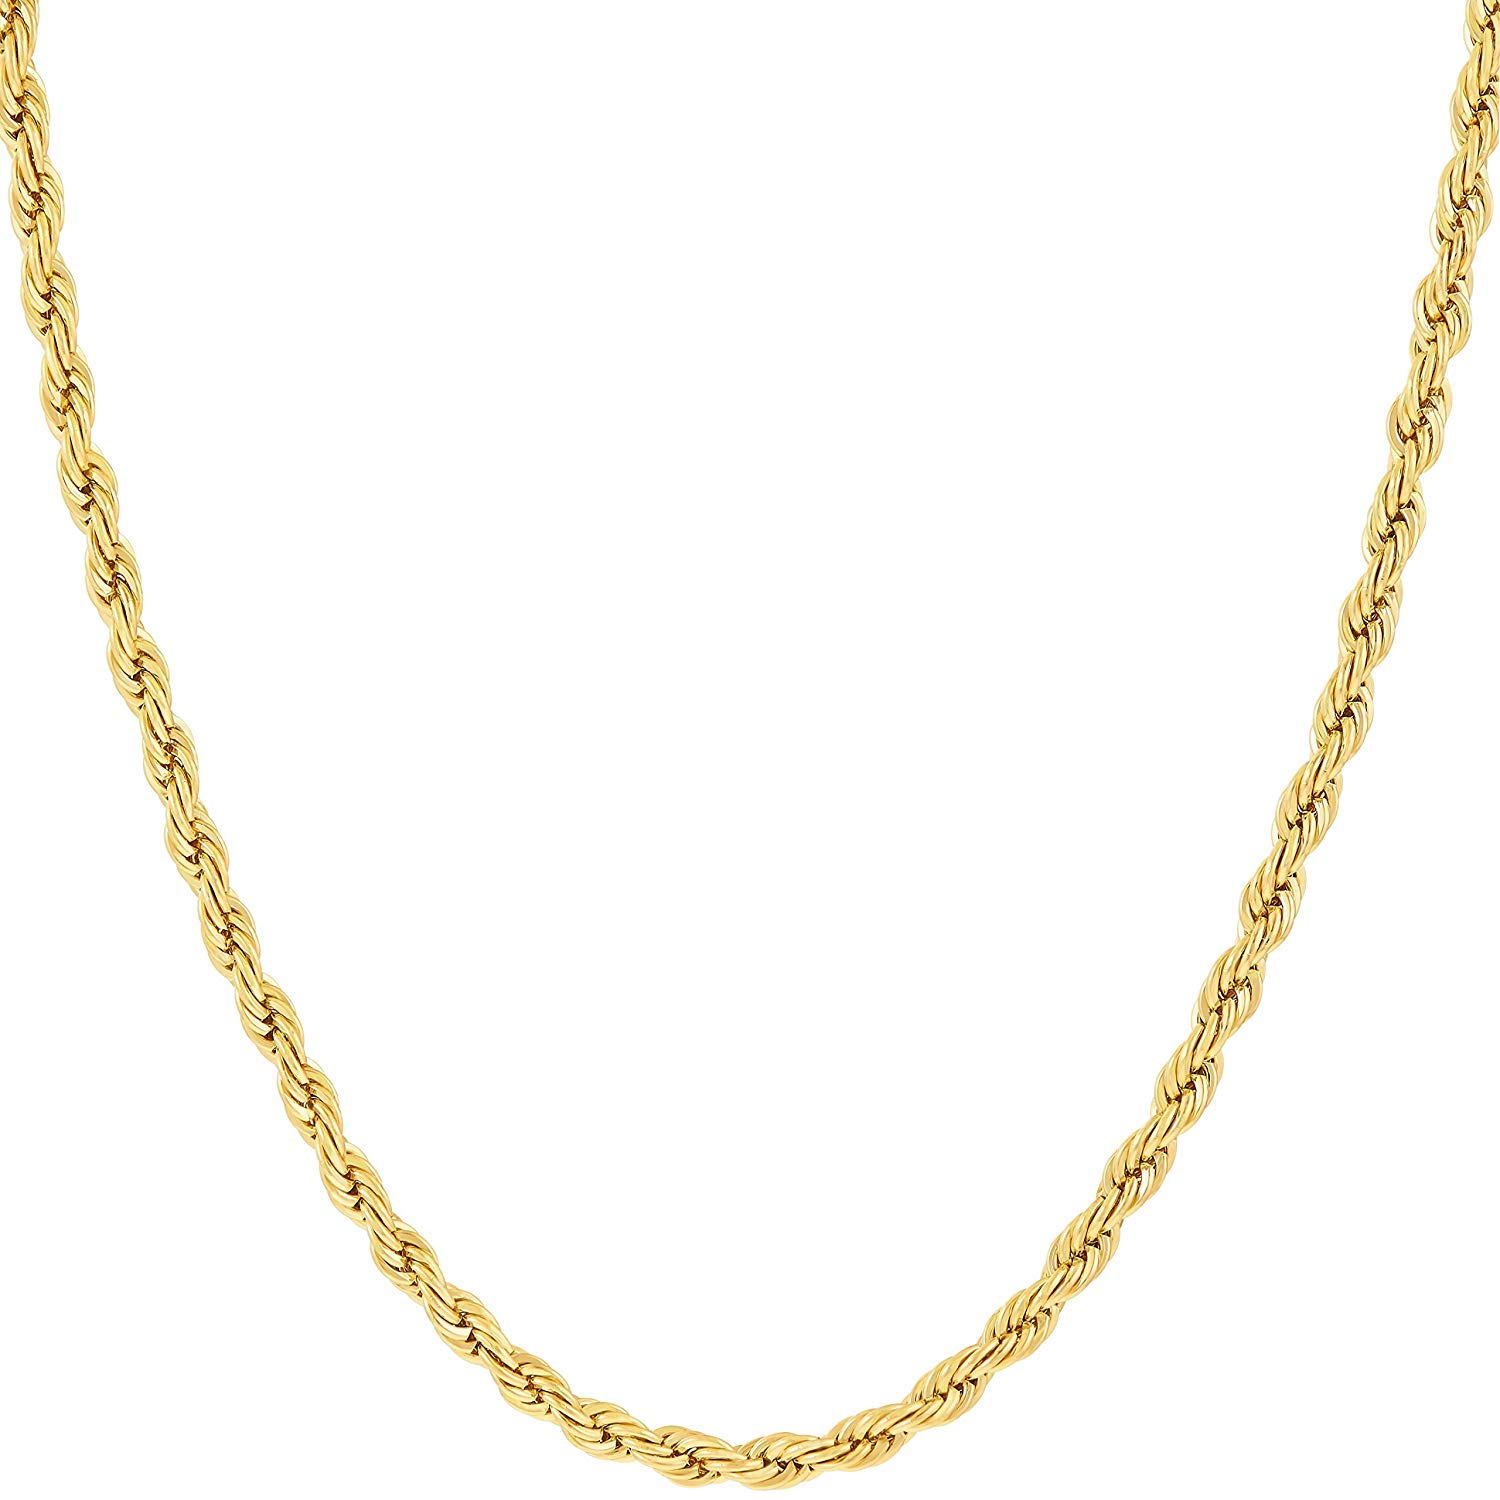 Hollywood Jewelry 14K Yellow Gold Solid 2mm Diamond Cut Rope Chain Necklace w/Real Strong Lobster Claw Clasp f/Men or Women Thin for Pendants 16-24inches